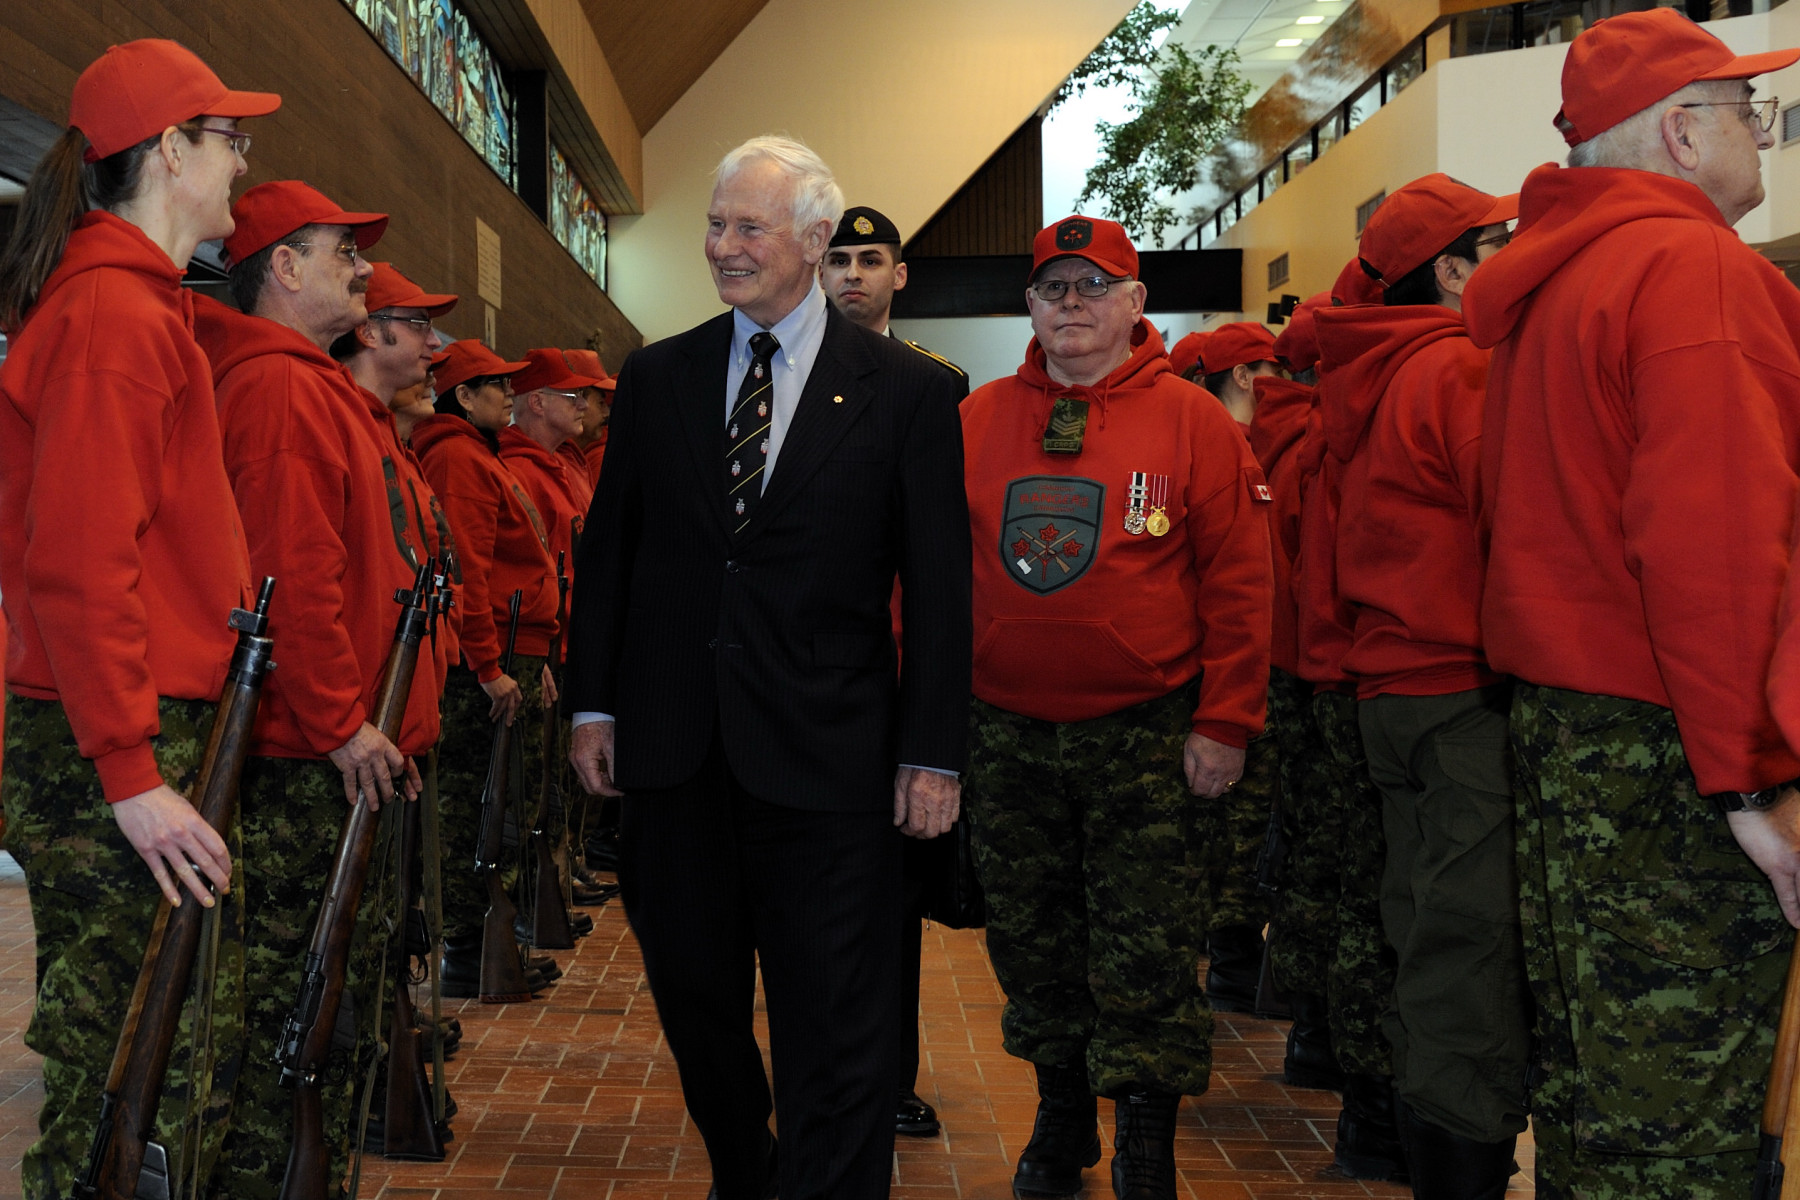 During the official welcoming ceremony, the Governor General conducted the inspection of the guard of honour composed of members of the Canadian Rangers.